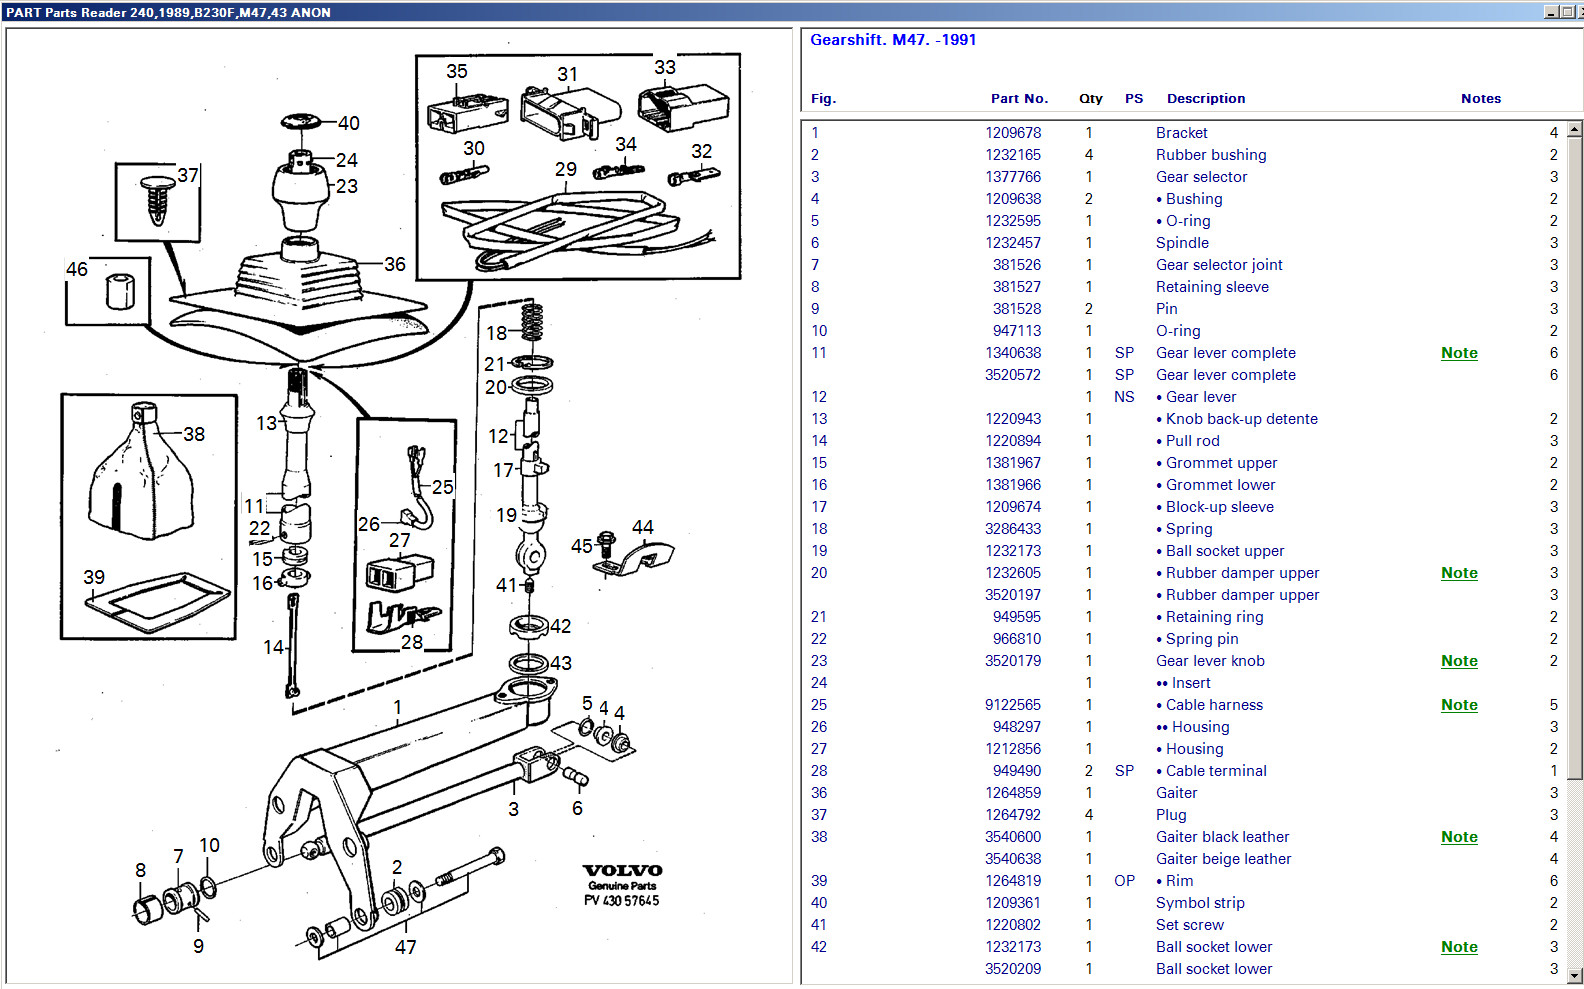 1993 volvo 240 stereo wiring diagram 2000 honda accord 940 engine kia sephia